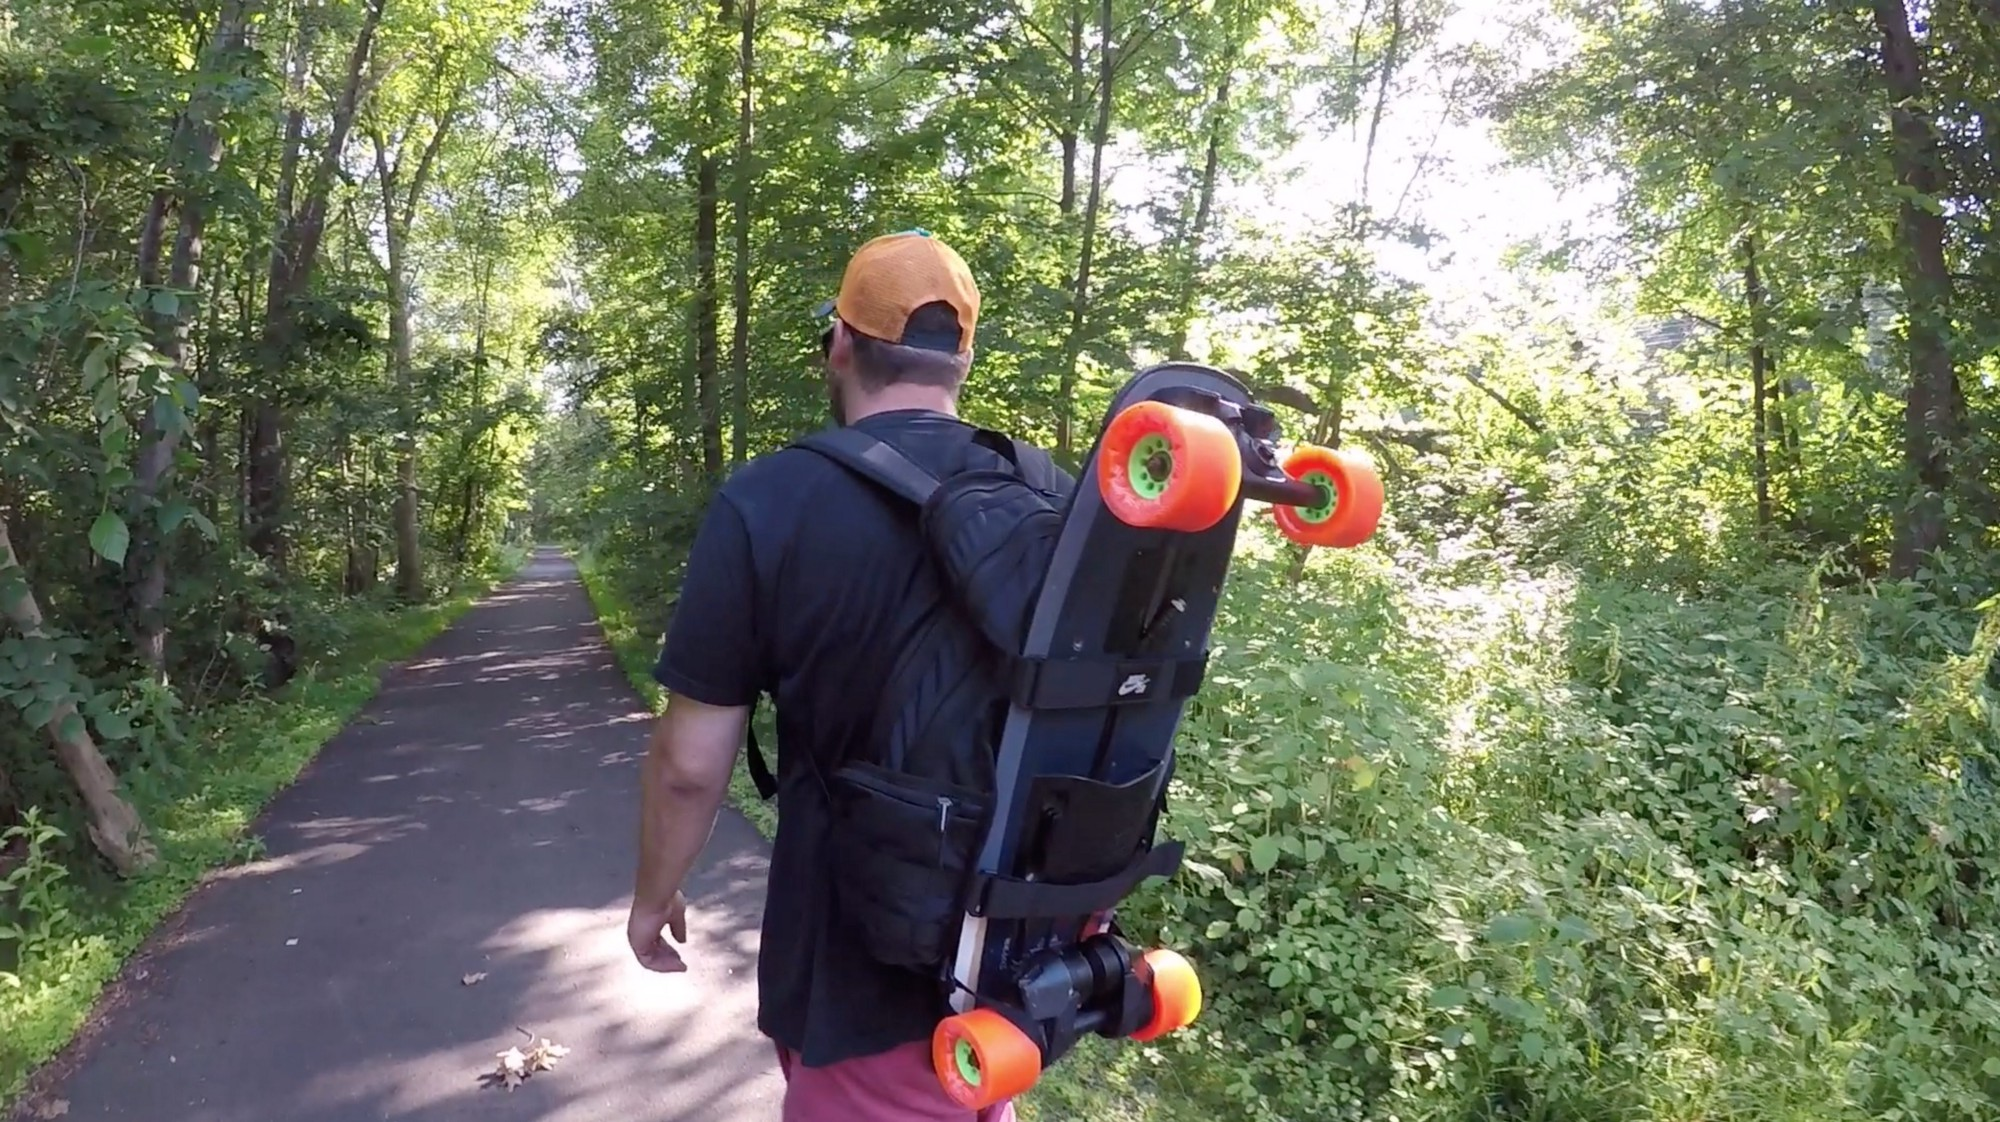 The Best Accessories for Boosted Board, Boosted Mini, Evolve